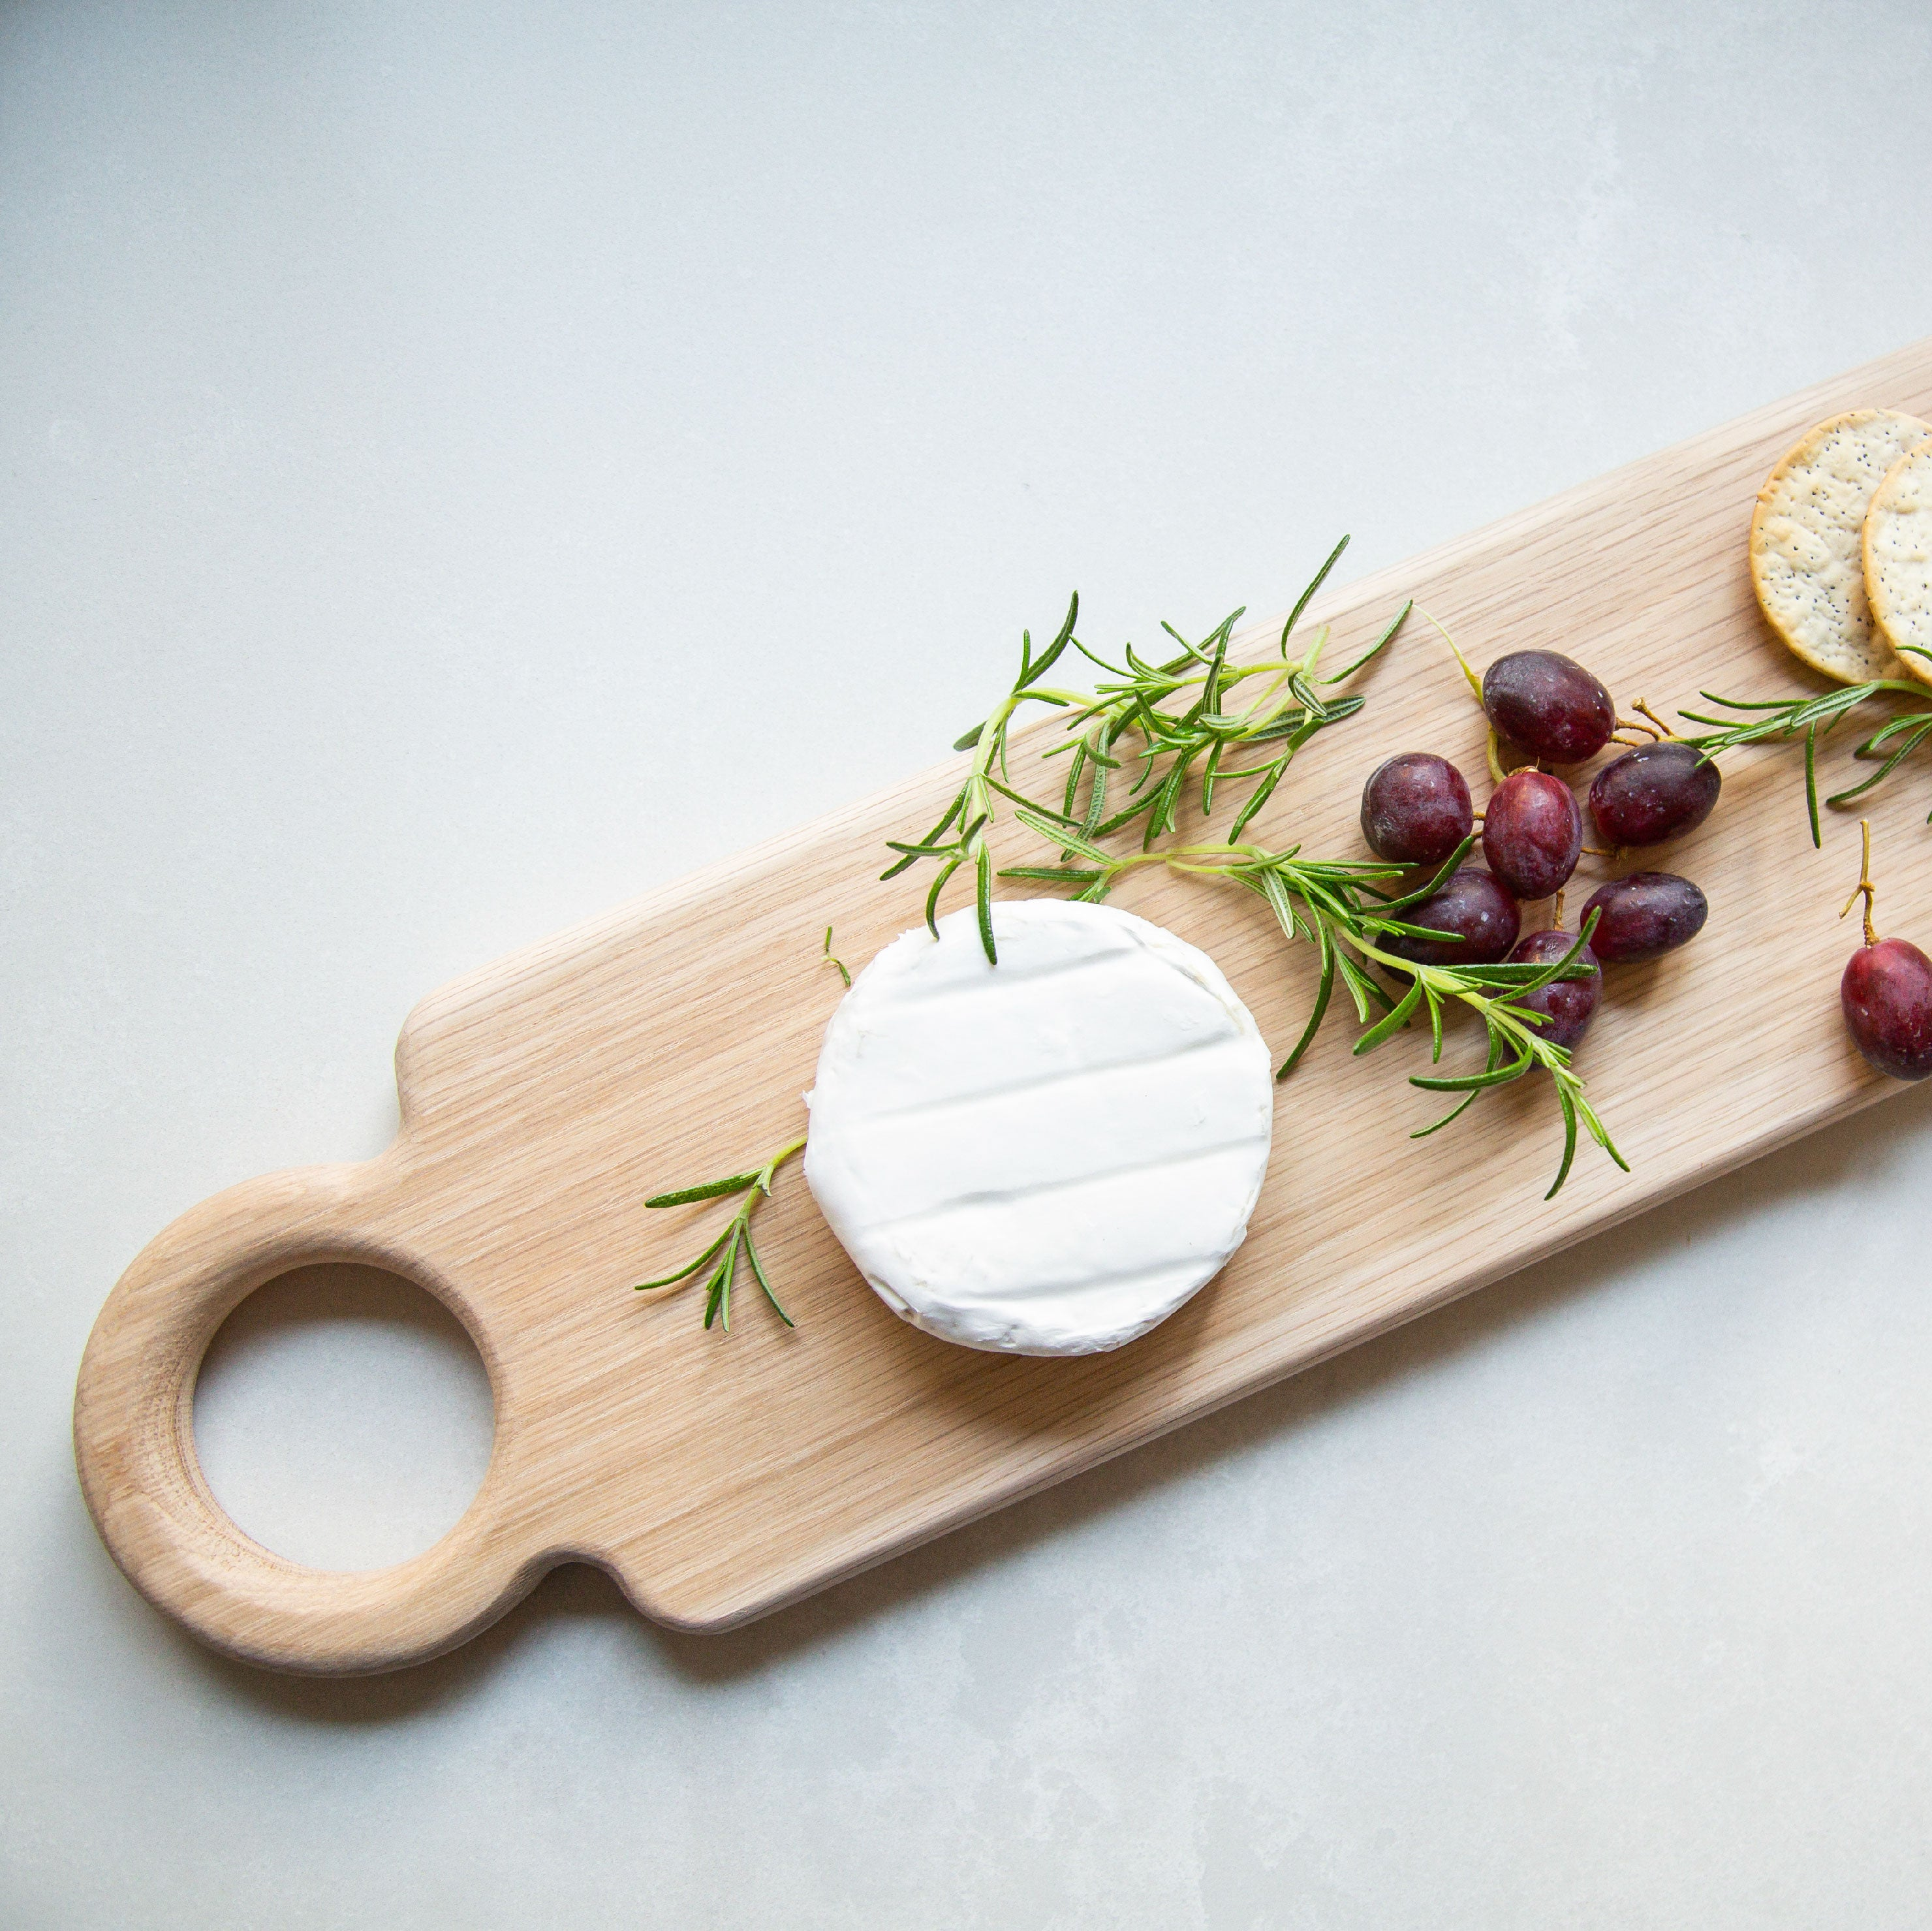 Nordic Home Serving Board - Orian